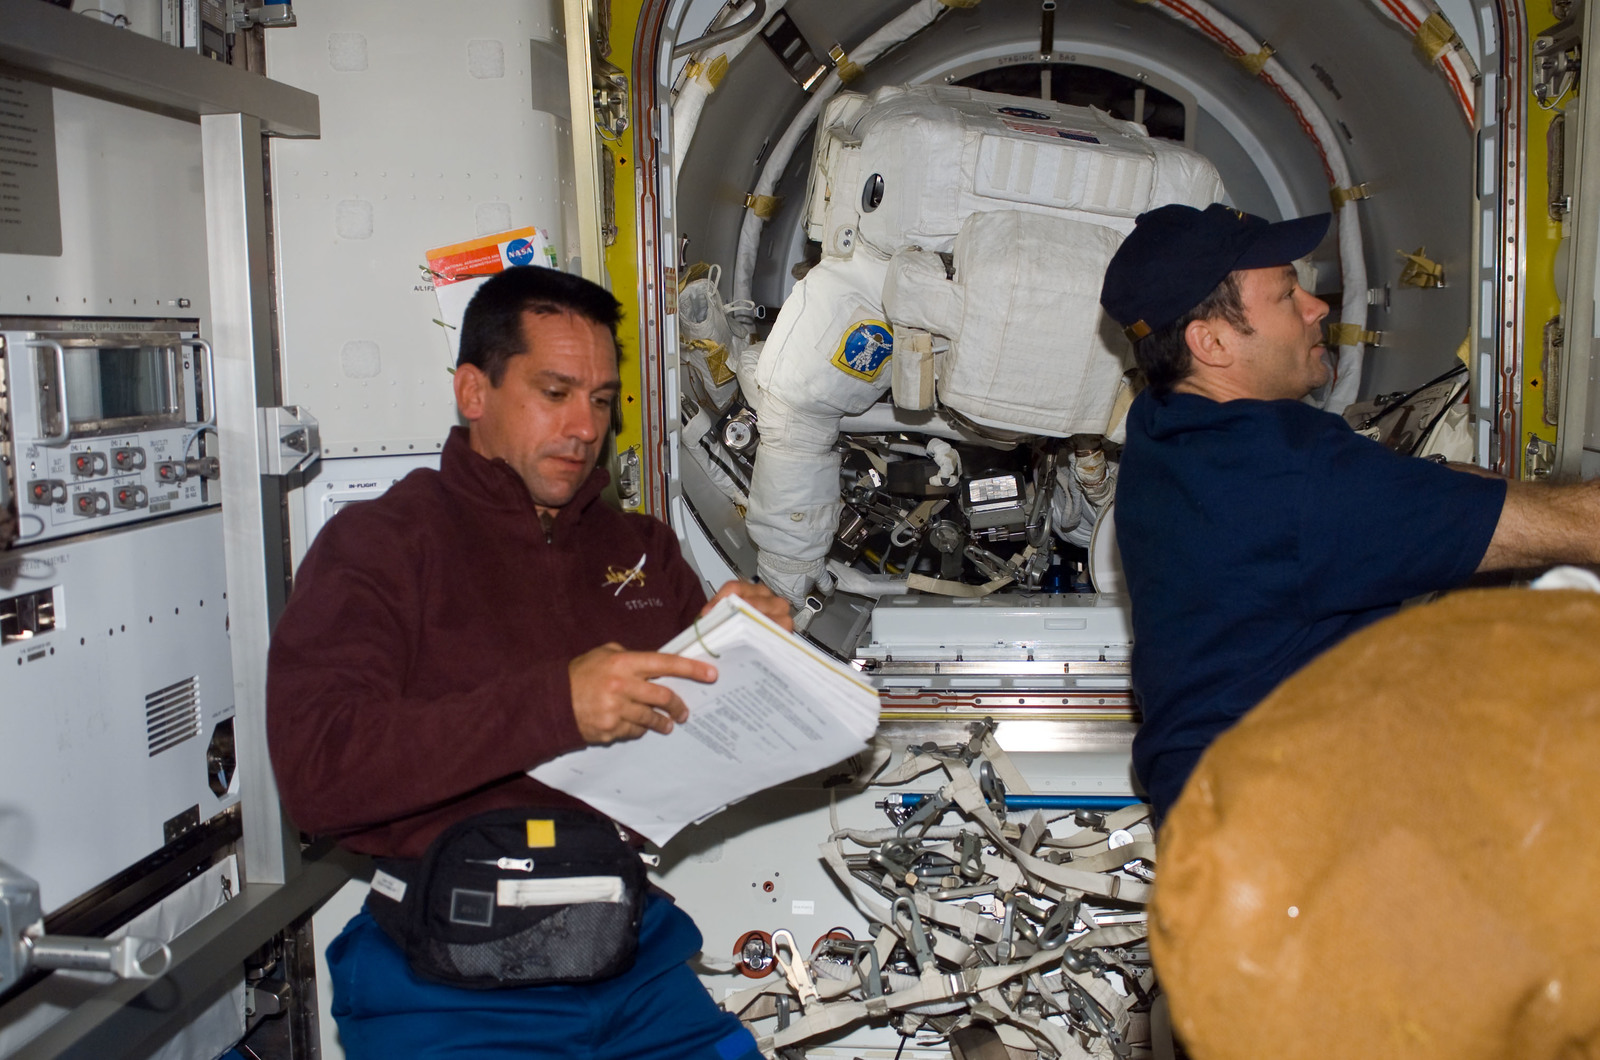 S116E06841 - STS-116 - STS-116 Pilot Oefelein and STS-116 MS Patrick in the A/L during Joint Operations